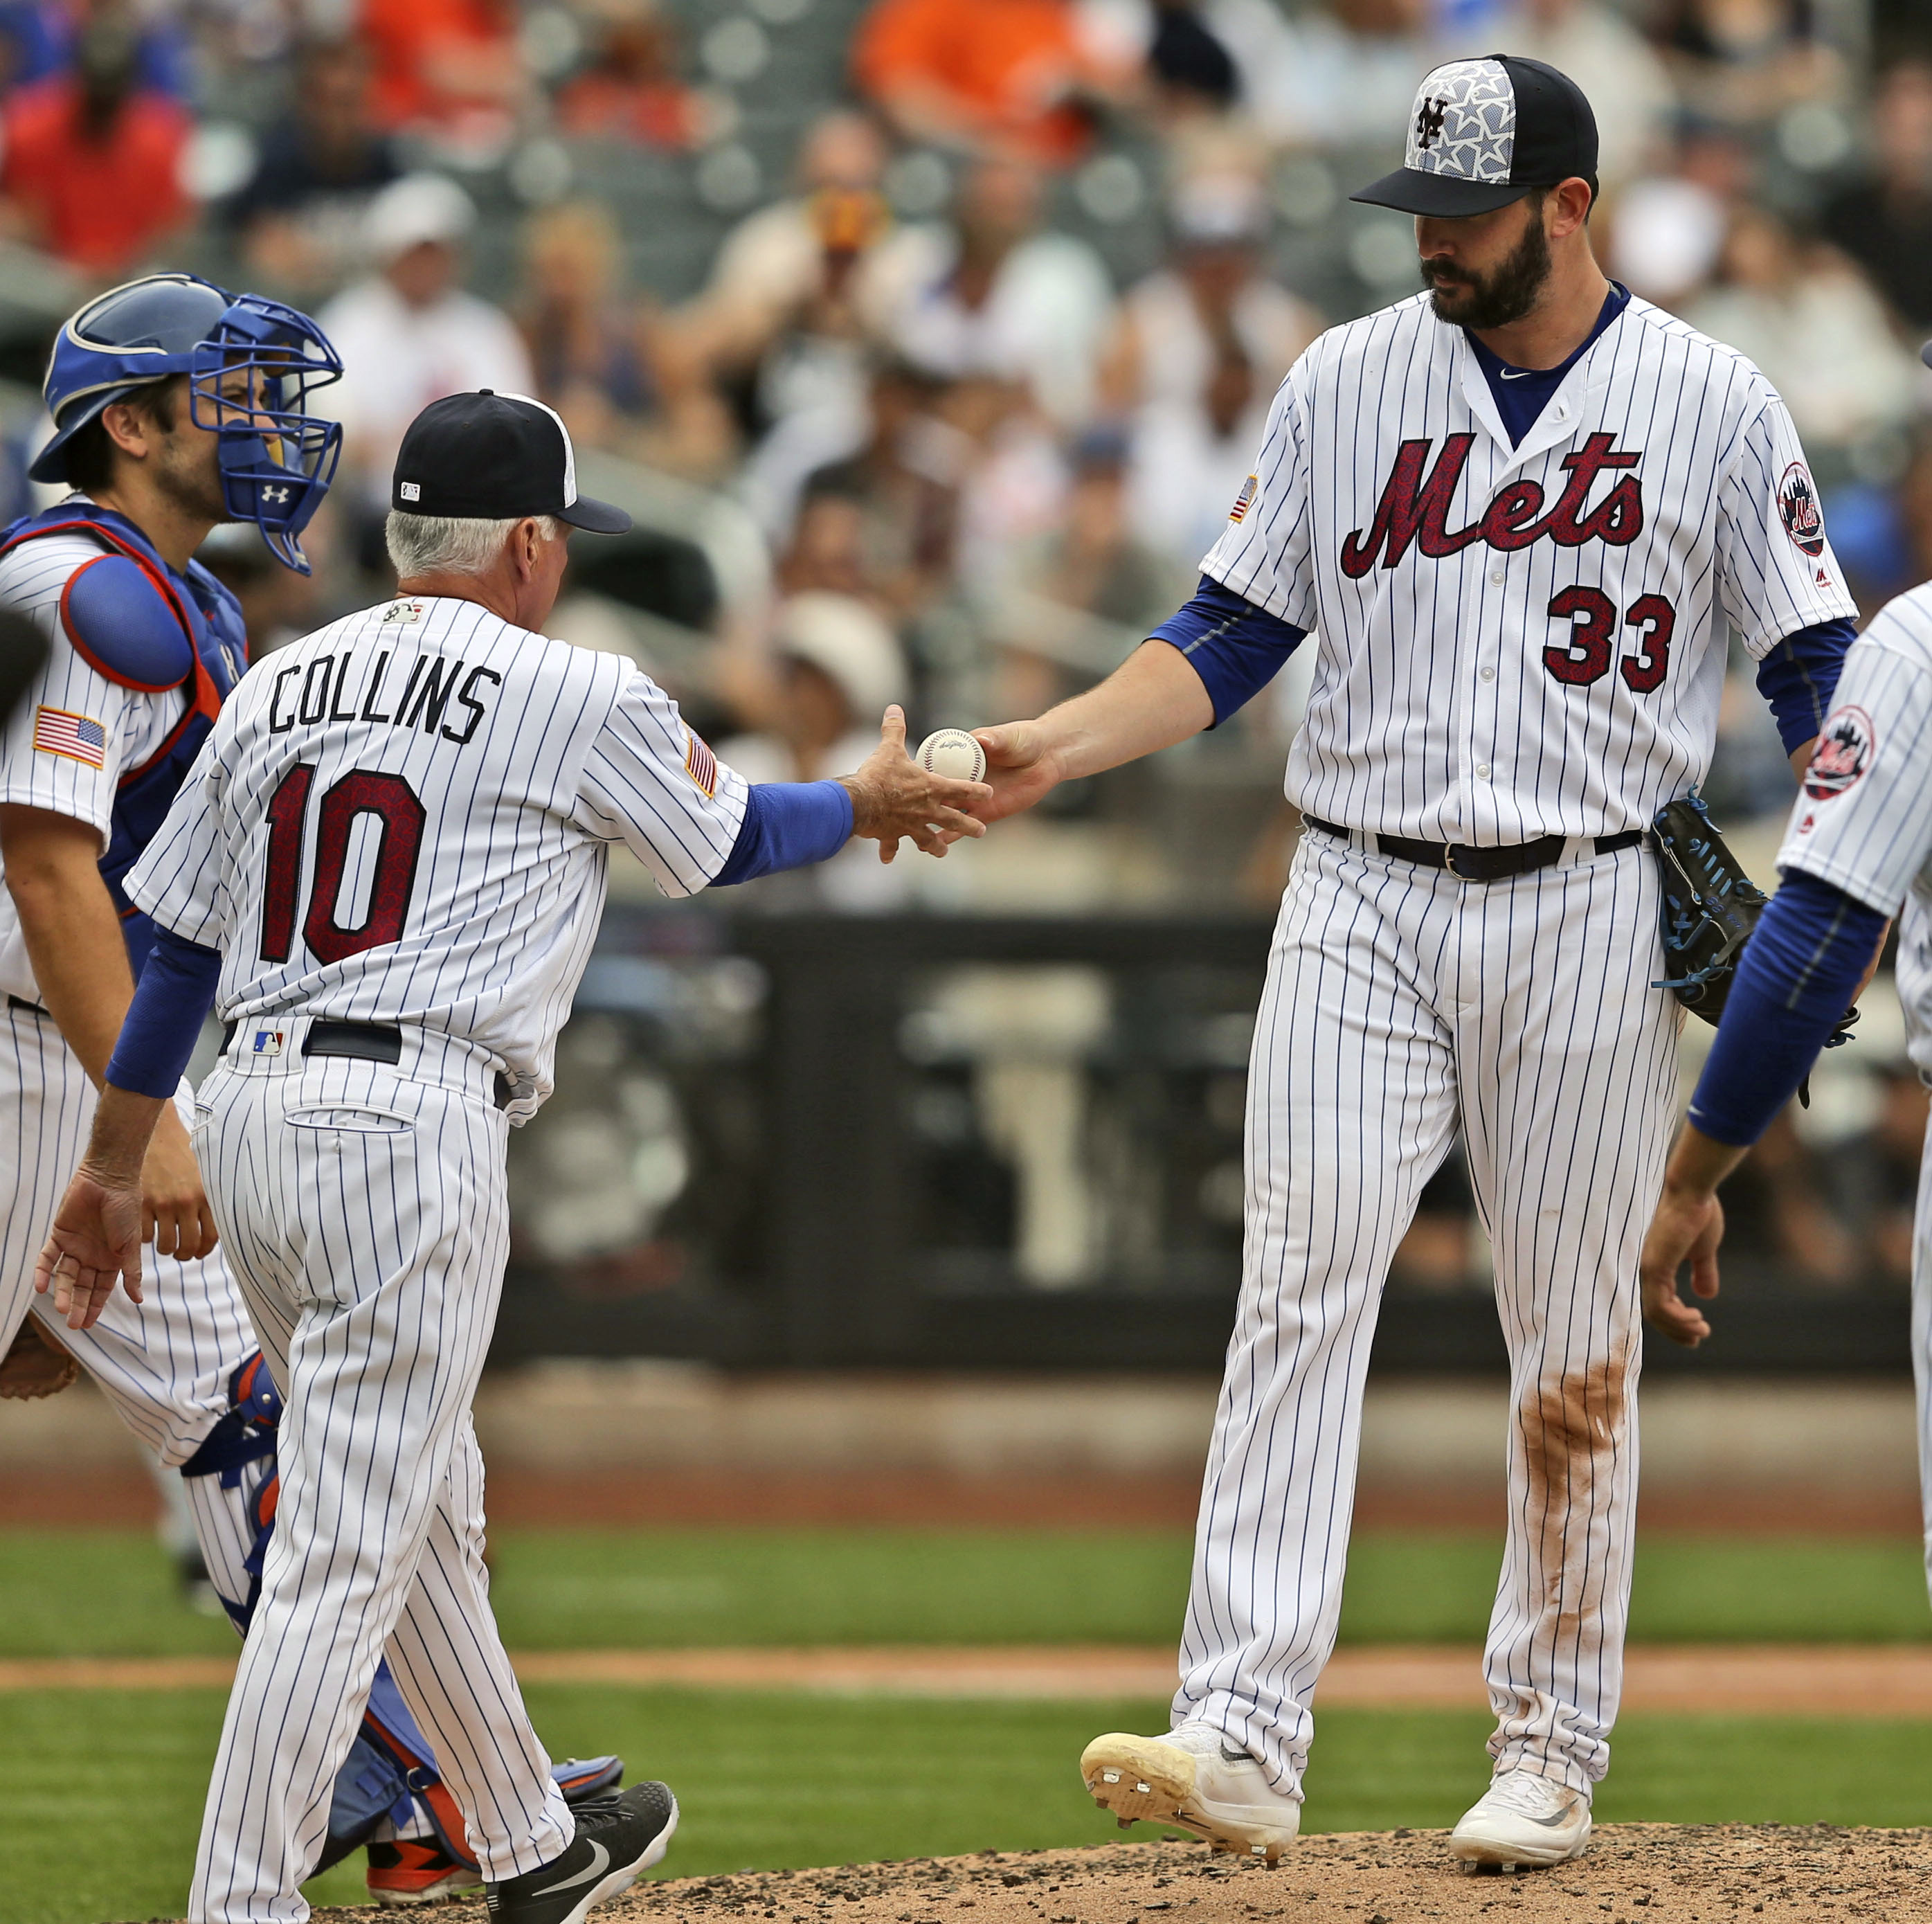 New York Mets manager Terry Collins, left, pulls pitcher Matt Harvey from a baseball game during the fourth inning against the Miami Marlins, Monday, July 4, 2016, in New York. (AP Photo/Seth Wenig)